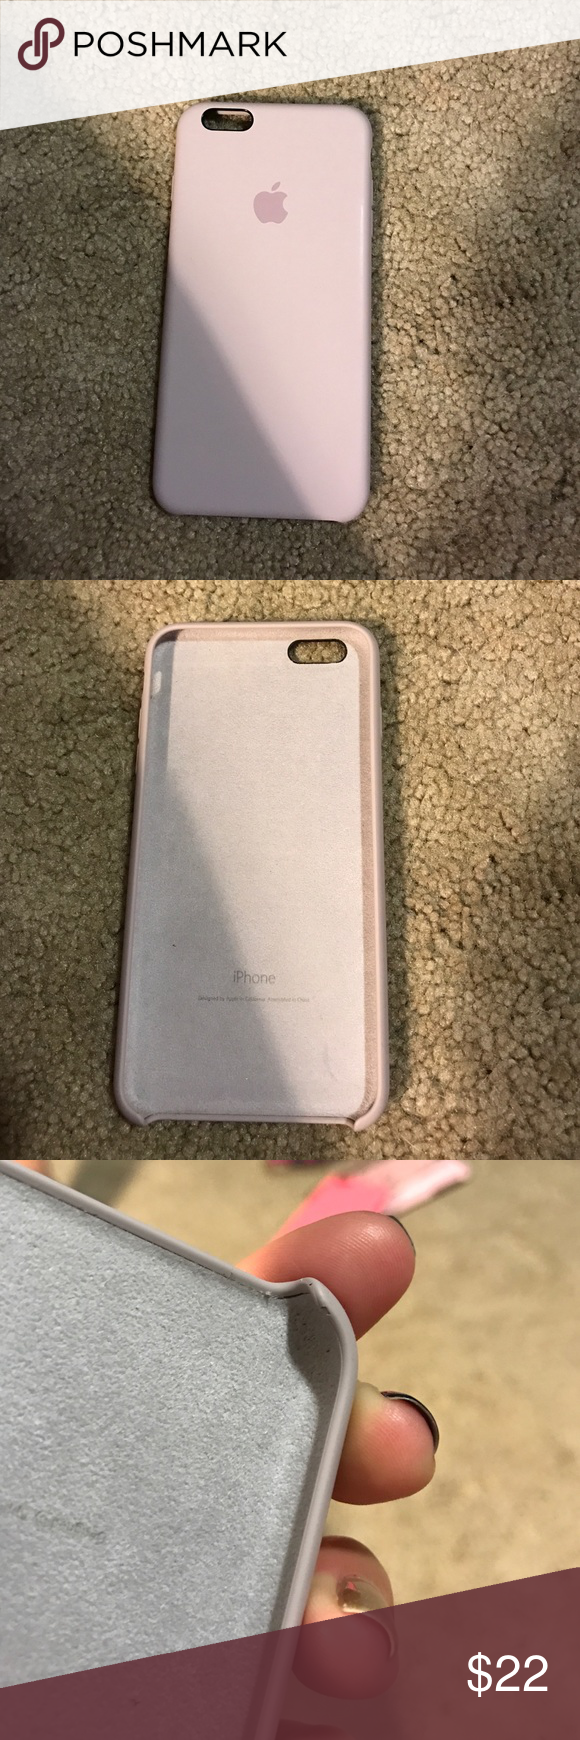 61fc3b7aa21 Silicon Apple brand iPhone 6 Plus case Lavender Apple silicone case. Only  one flaw (see last picture) the inside corner of the case has a blemish.